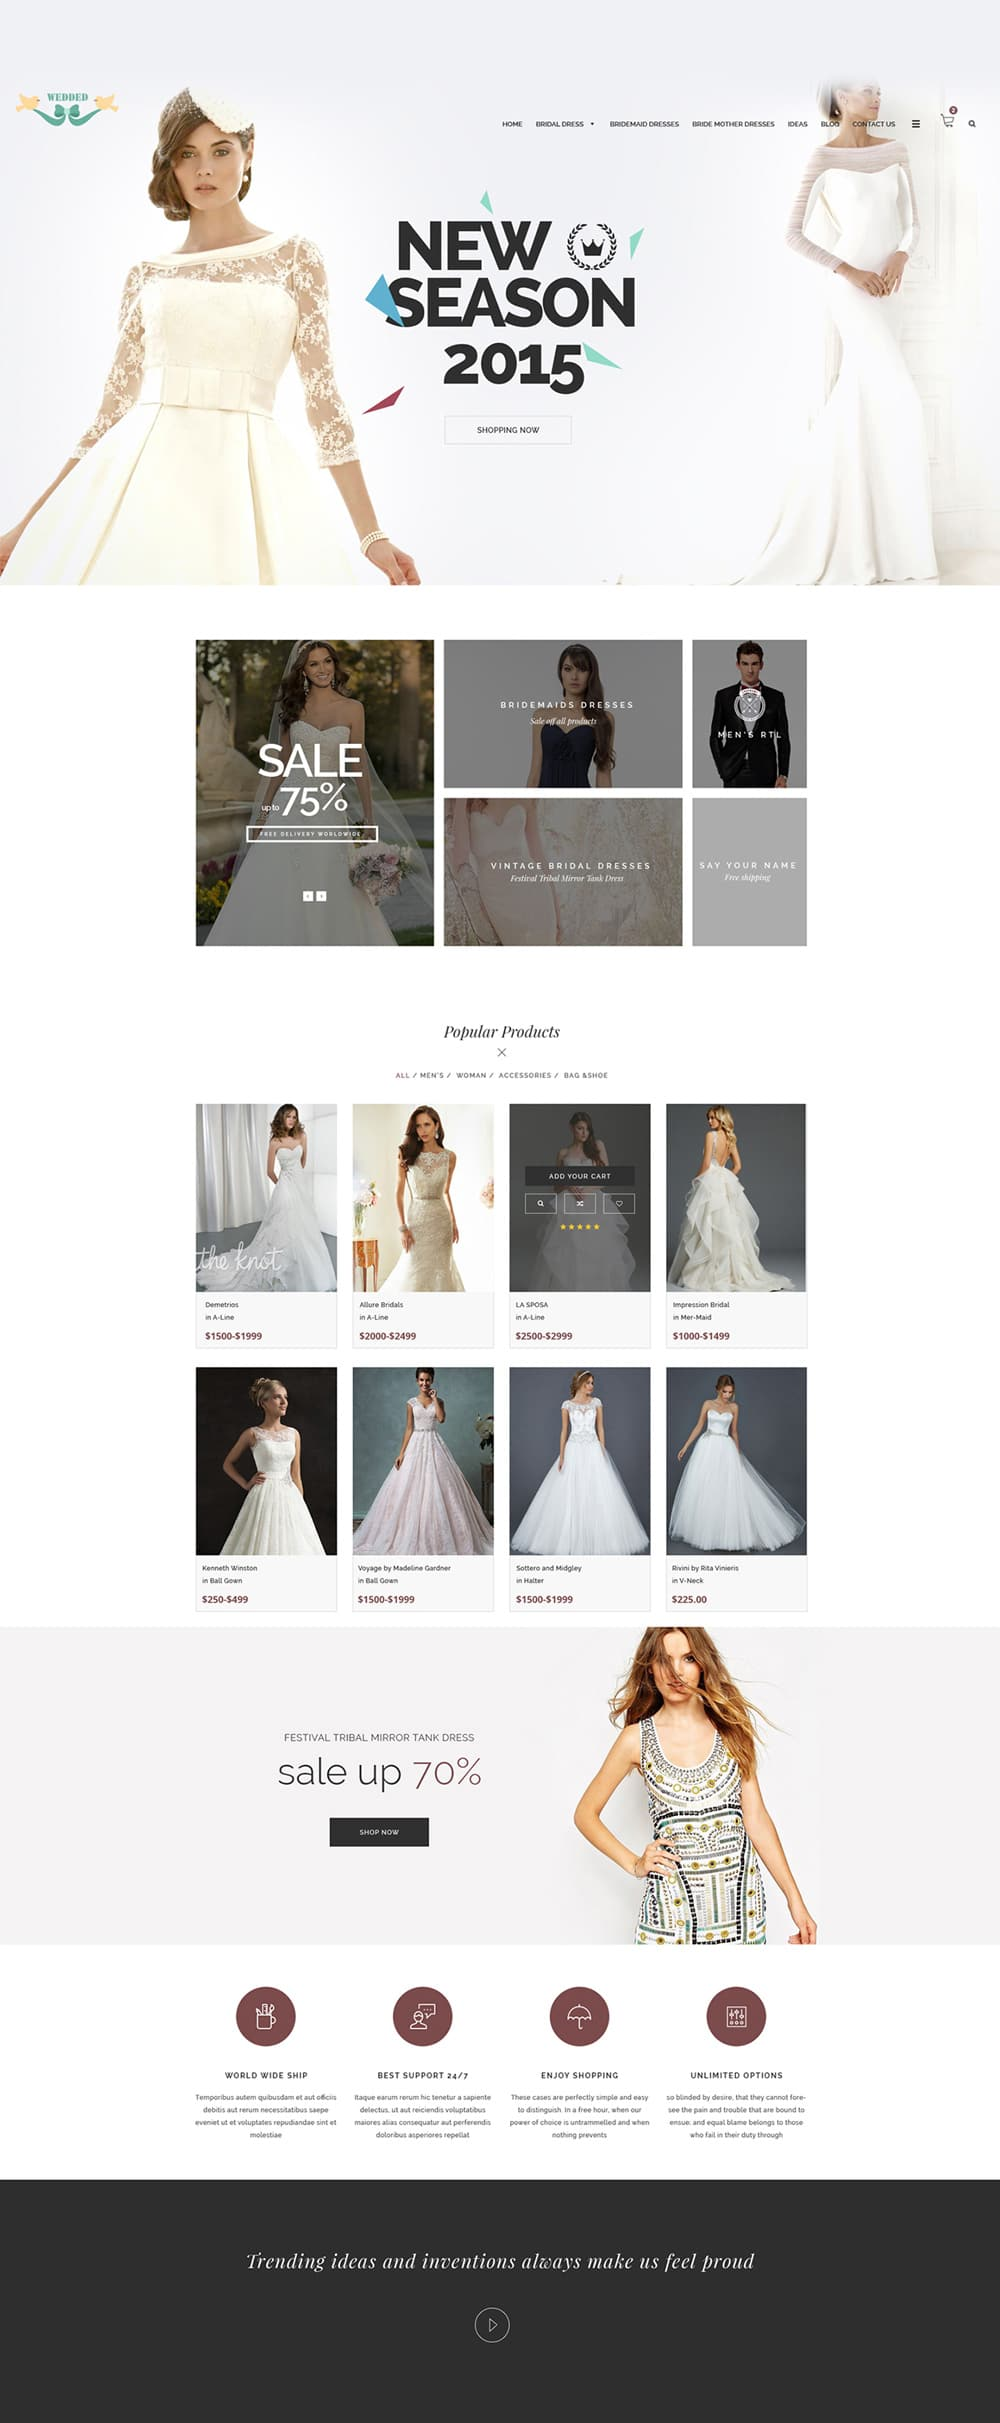 Wedding-Dresses